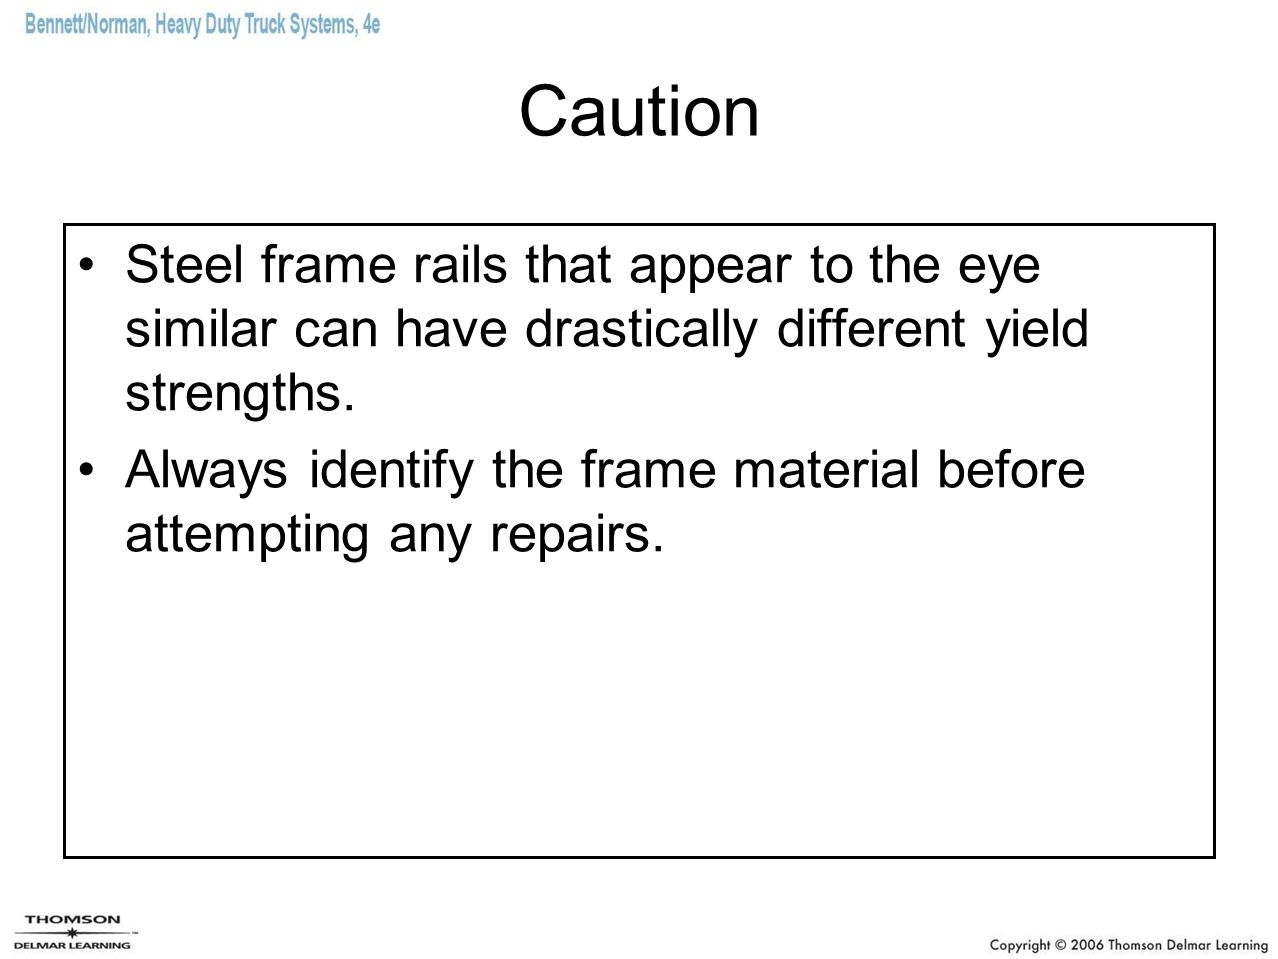 Caution Steel frame rails that appear to the eye similar can have drastically different yield strengths.